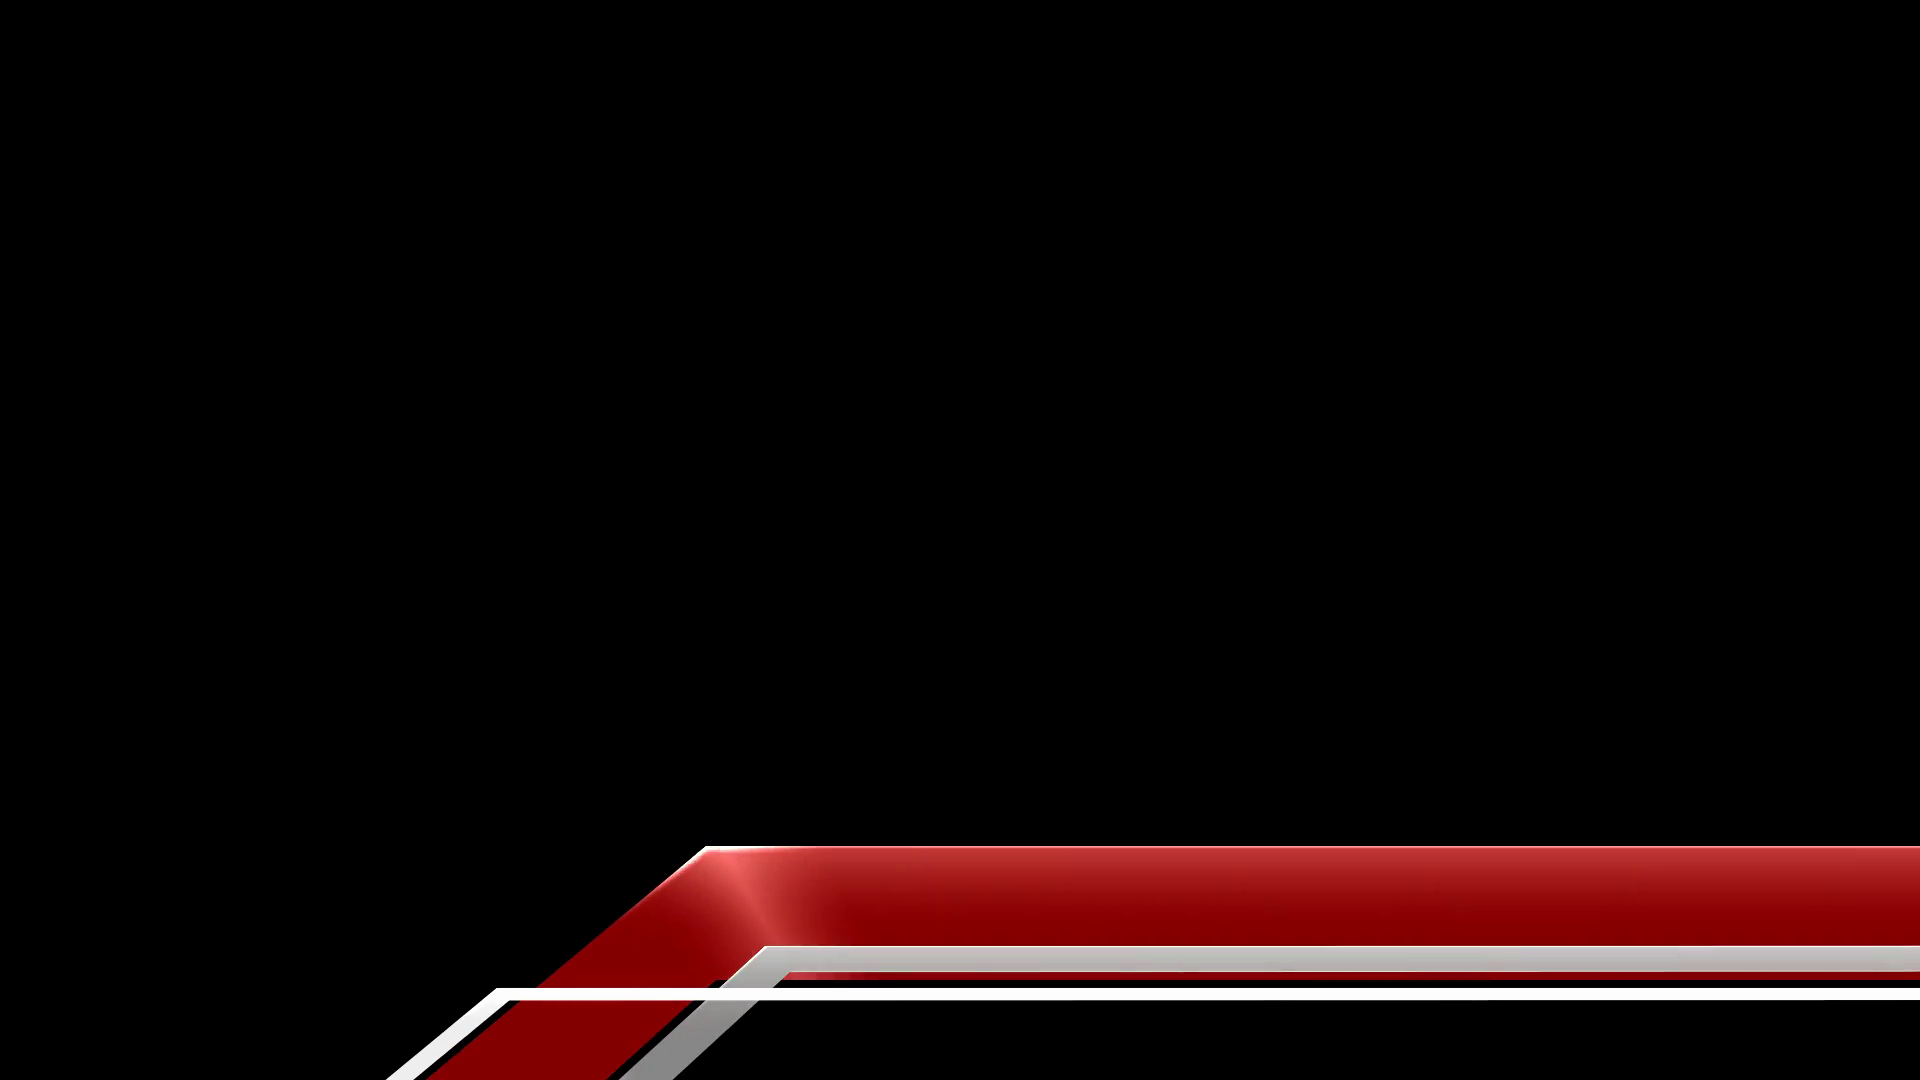 Free Lower Third Template Luxury Graphic Lower Third 9 Red Stock Video Footage